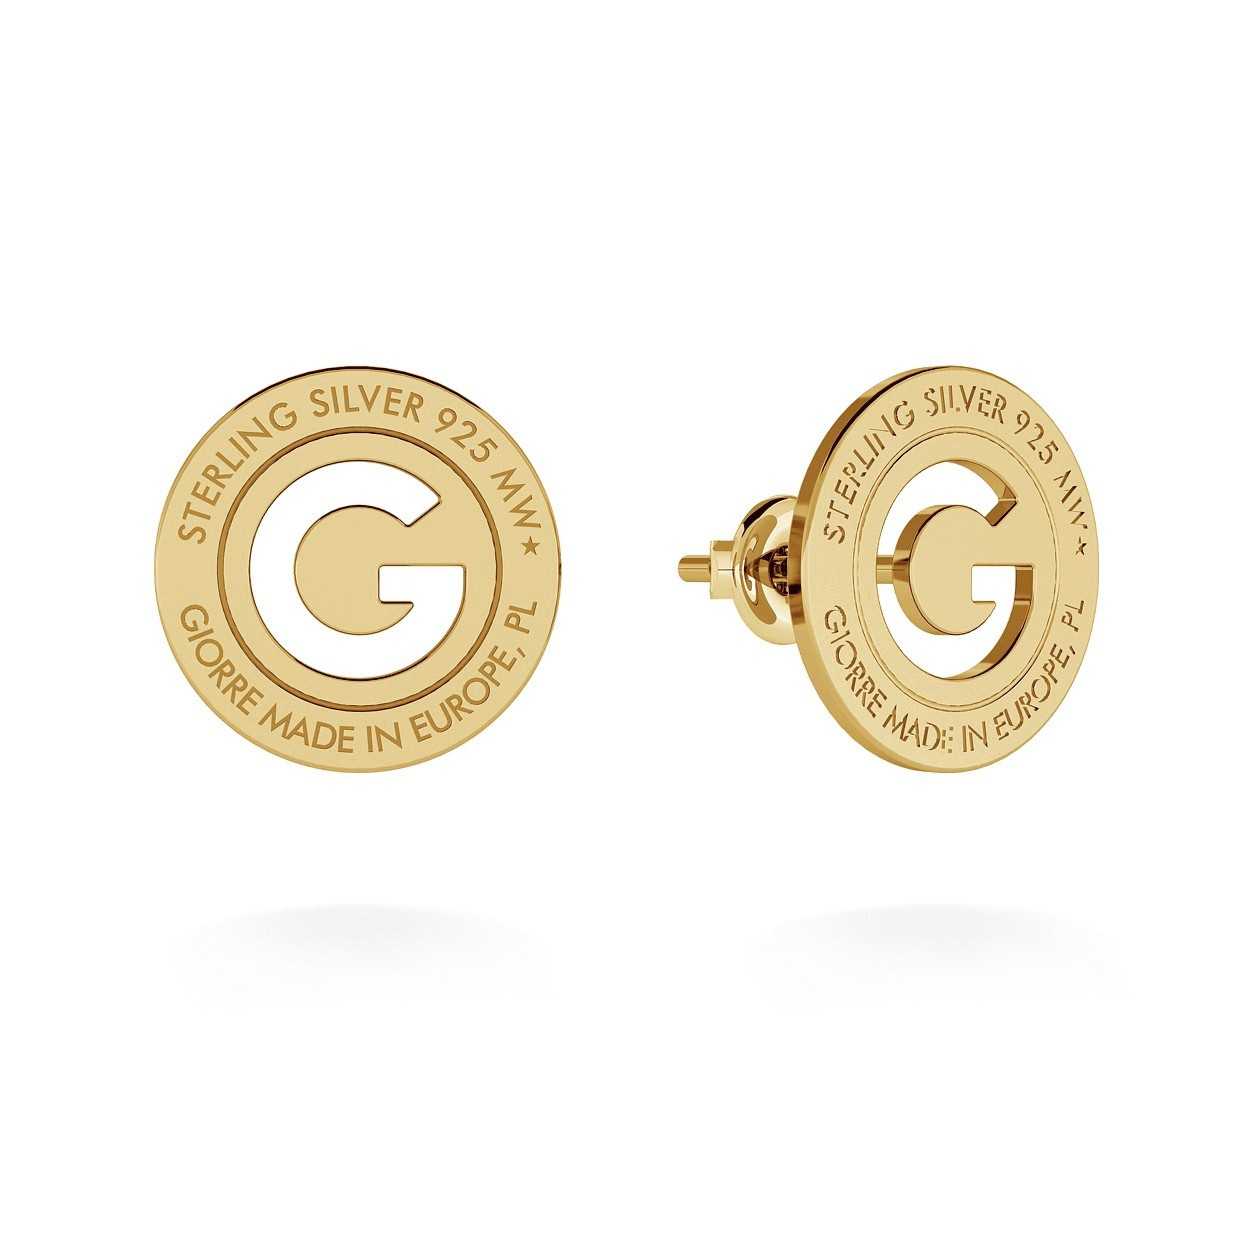 EARRINGS GIORRE BRAND, STERLING SILVER (925) RHODIUM OR GOLD PLATED